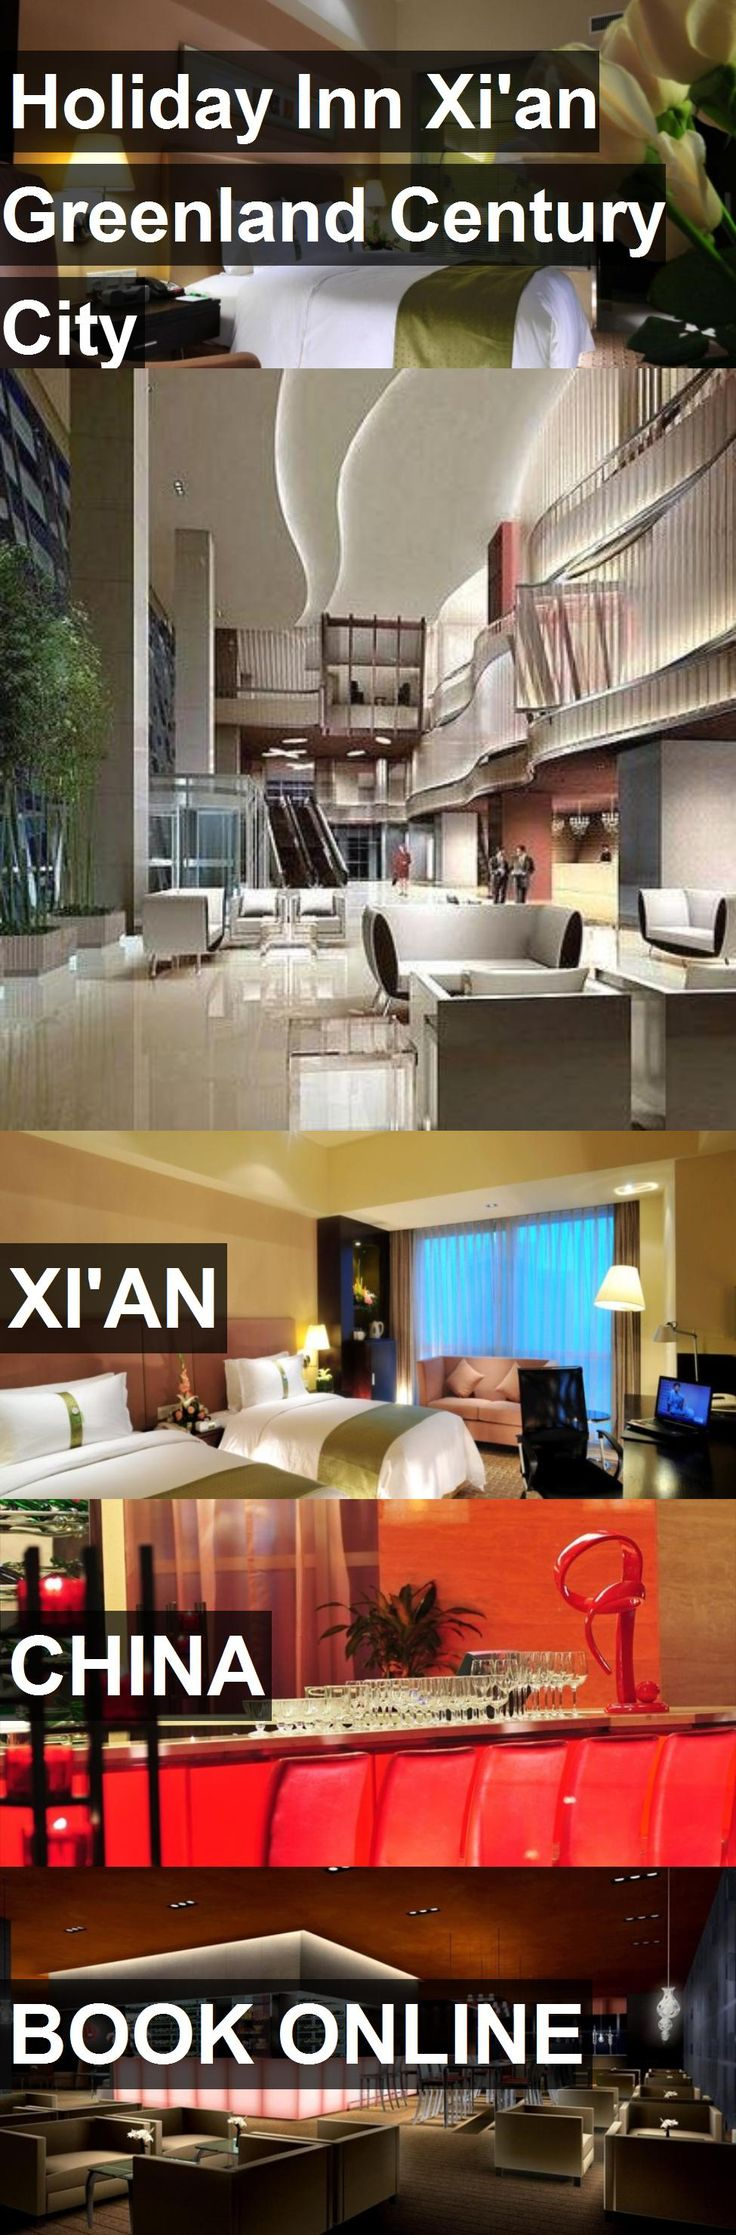 Hotel Holiday Inn Xi'an Greenland Century City in Xi'an, China. For more information, photos, reviews and best prices please follow the link. #China #Xi'an #travel #vacation #hotel